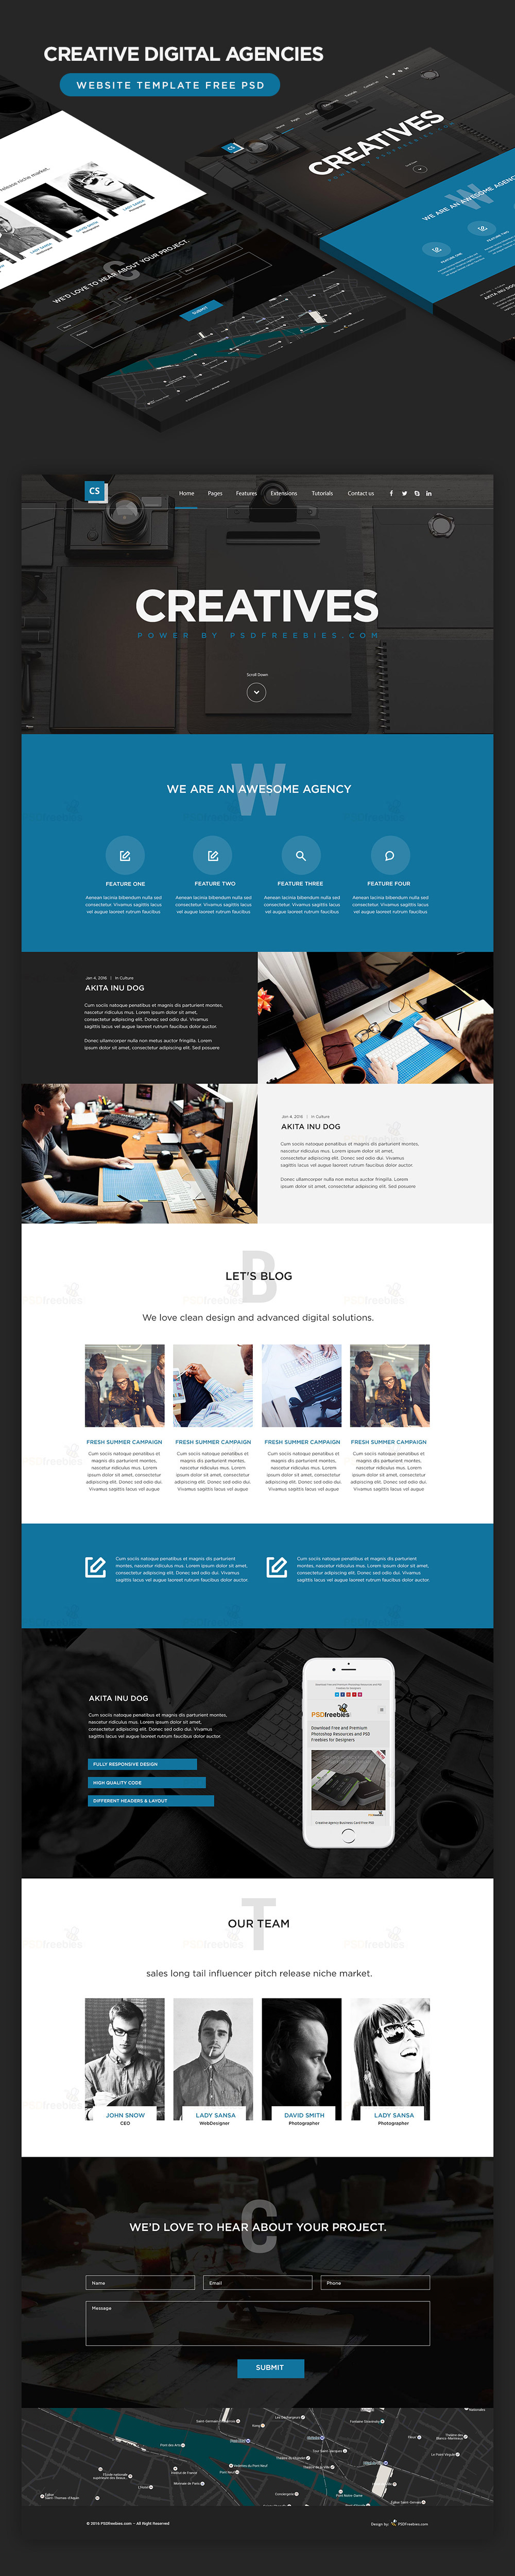 High quality 50 free corporate and business web templates psd creative digital agencies website template free psd download flashek Choice Image